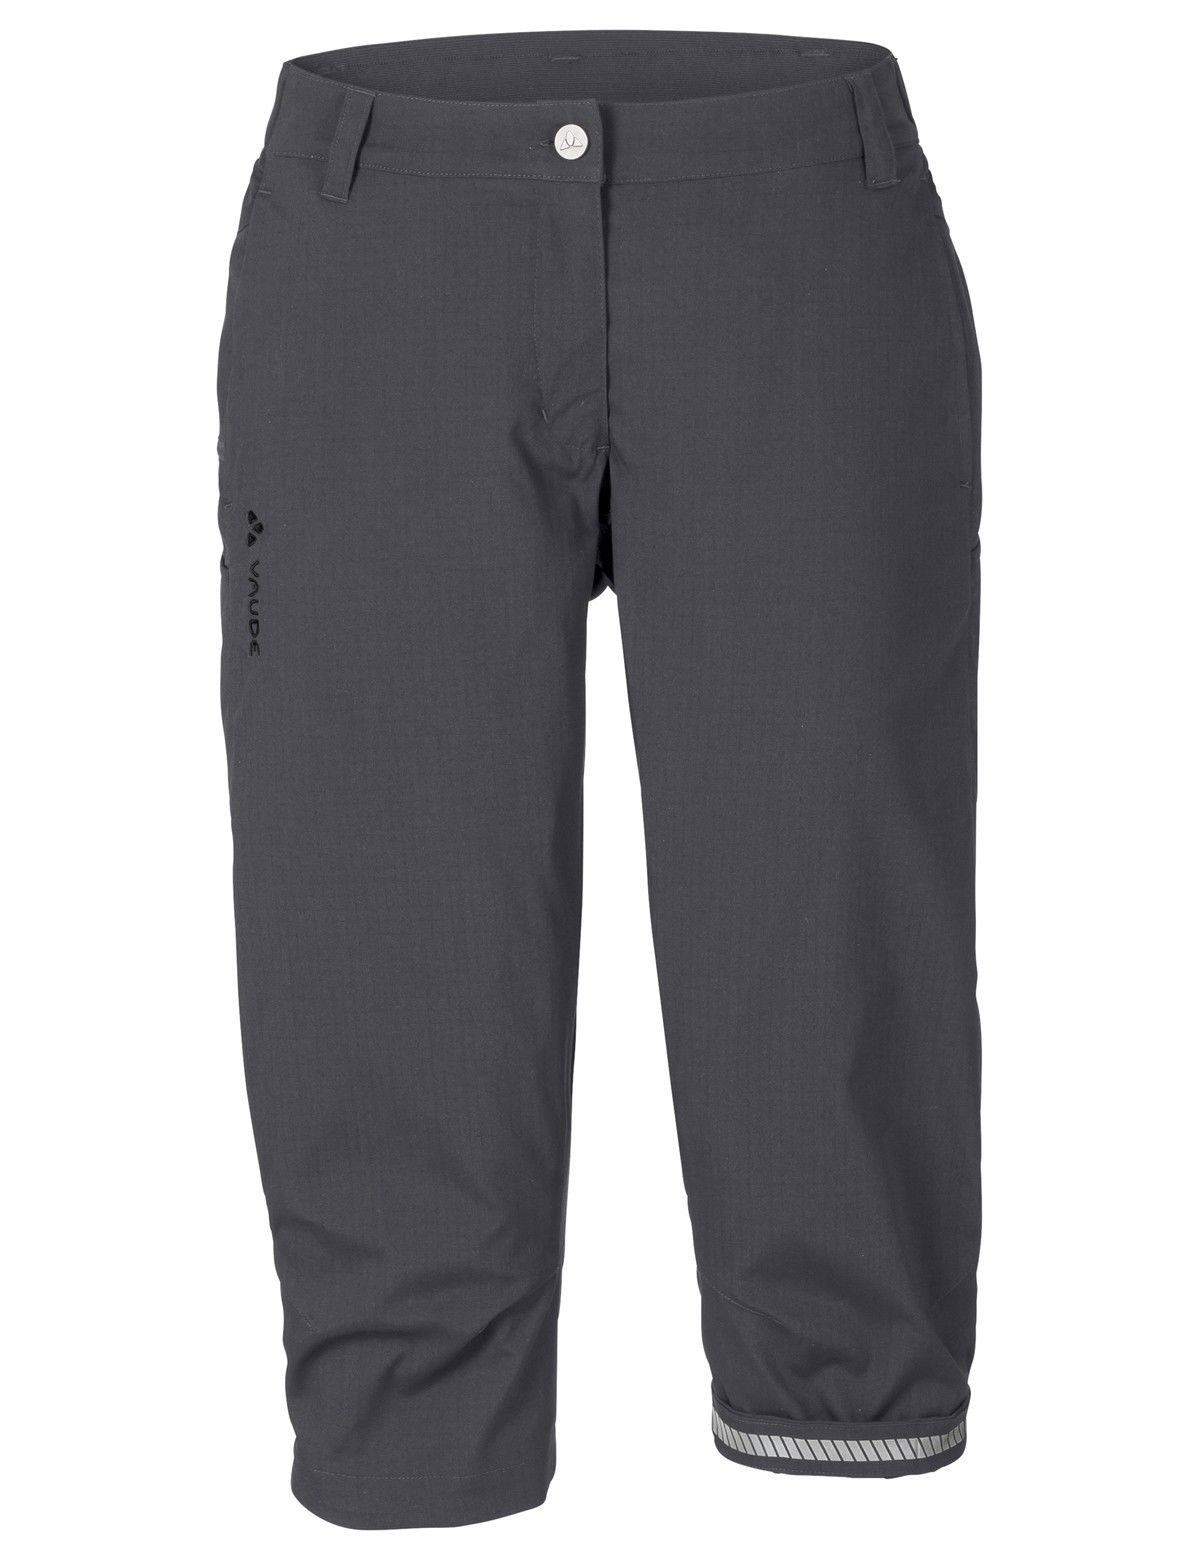 Vaude Krusa 3/4 Pants Grau, Female Hose, 44